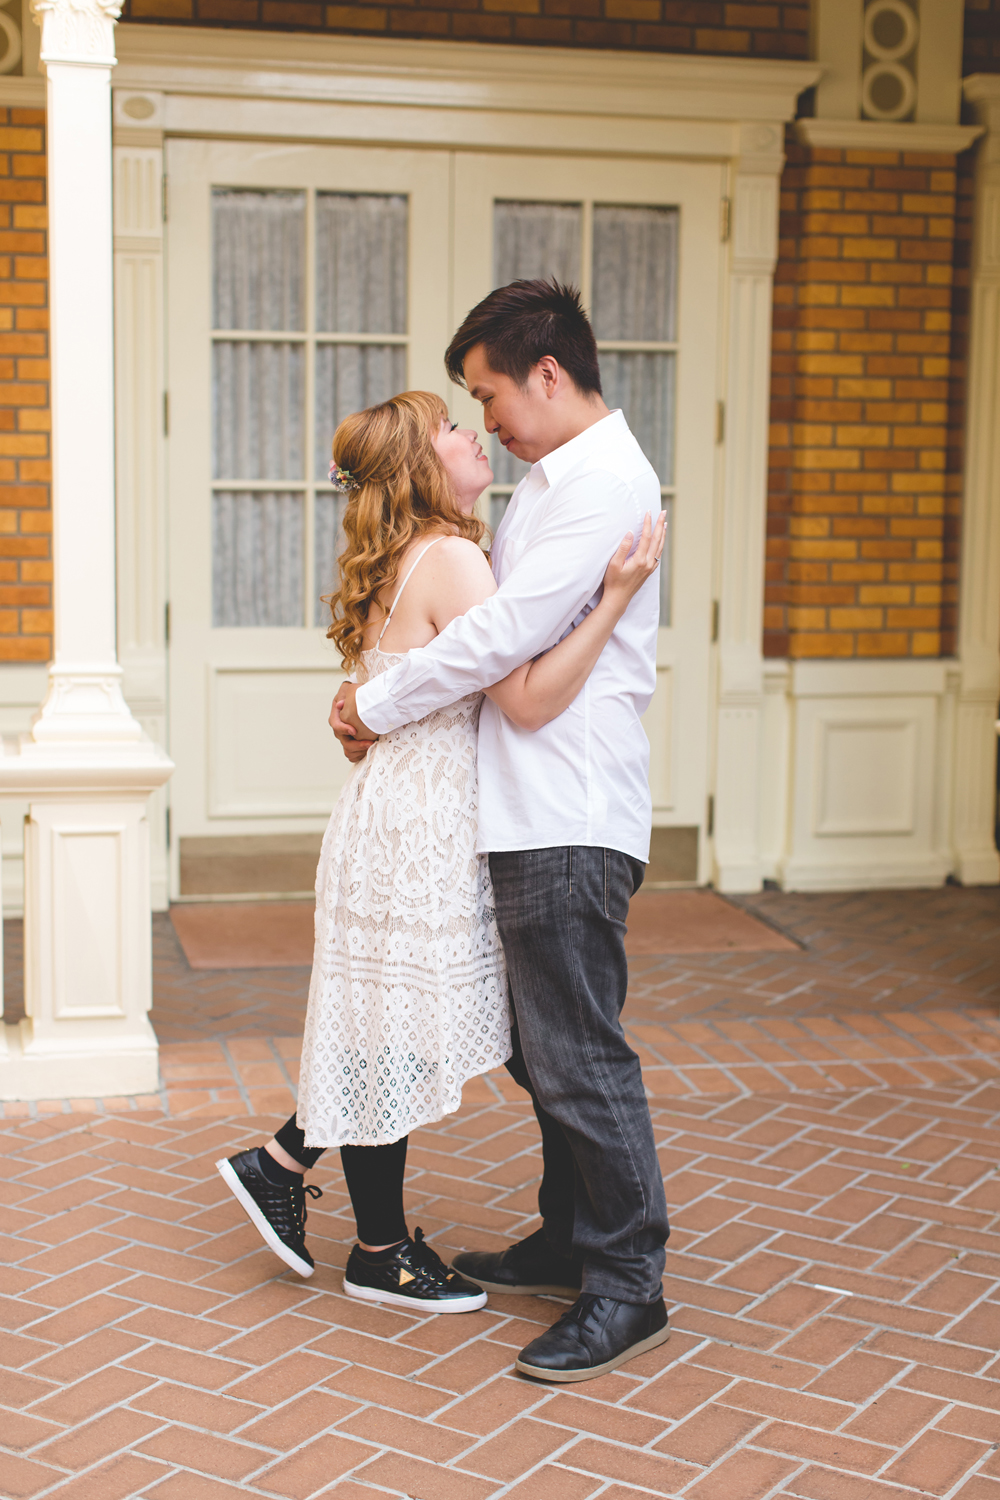 Disney Honeymoon session - Disney Engagement Photos - Disney Wedding Photographer - Destination Orlando Wedding Photographer - Jaime DiOrio (4).jpg